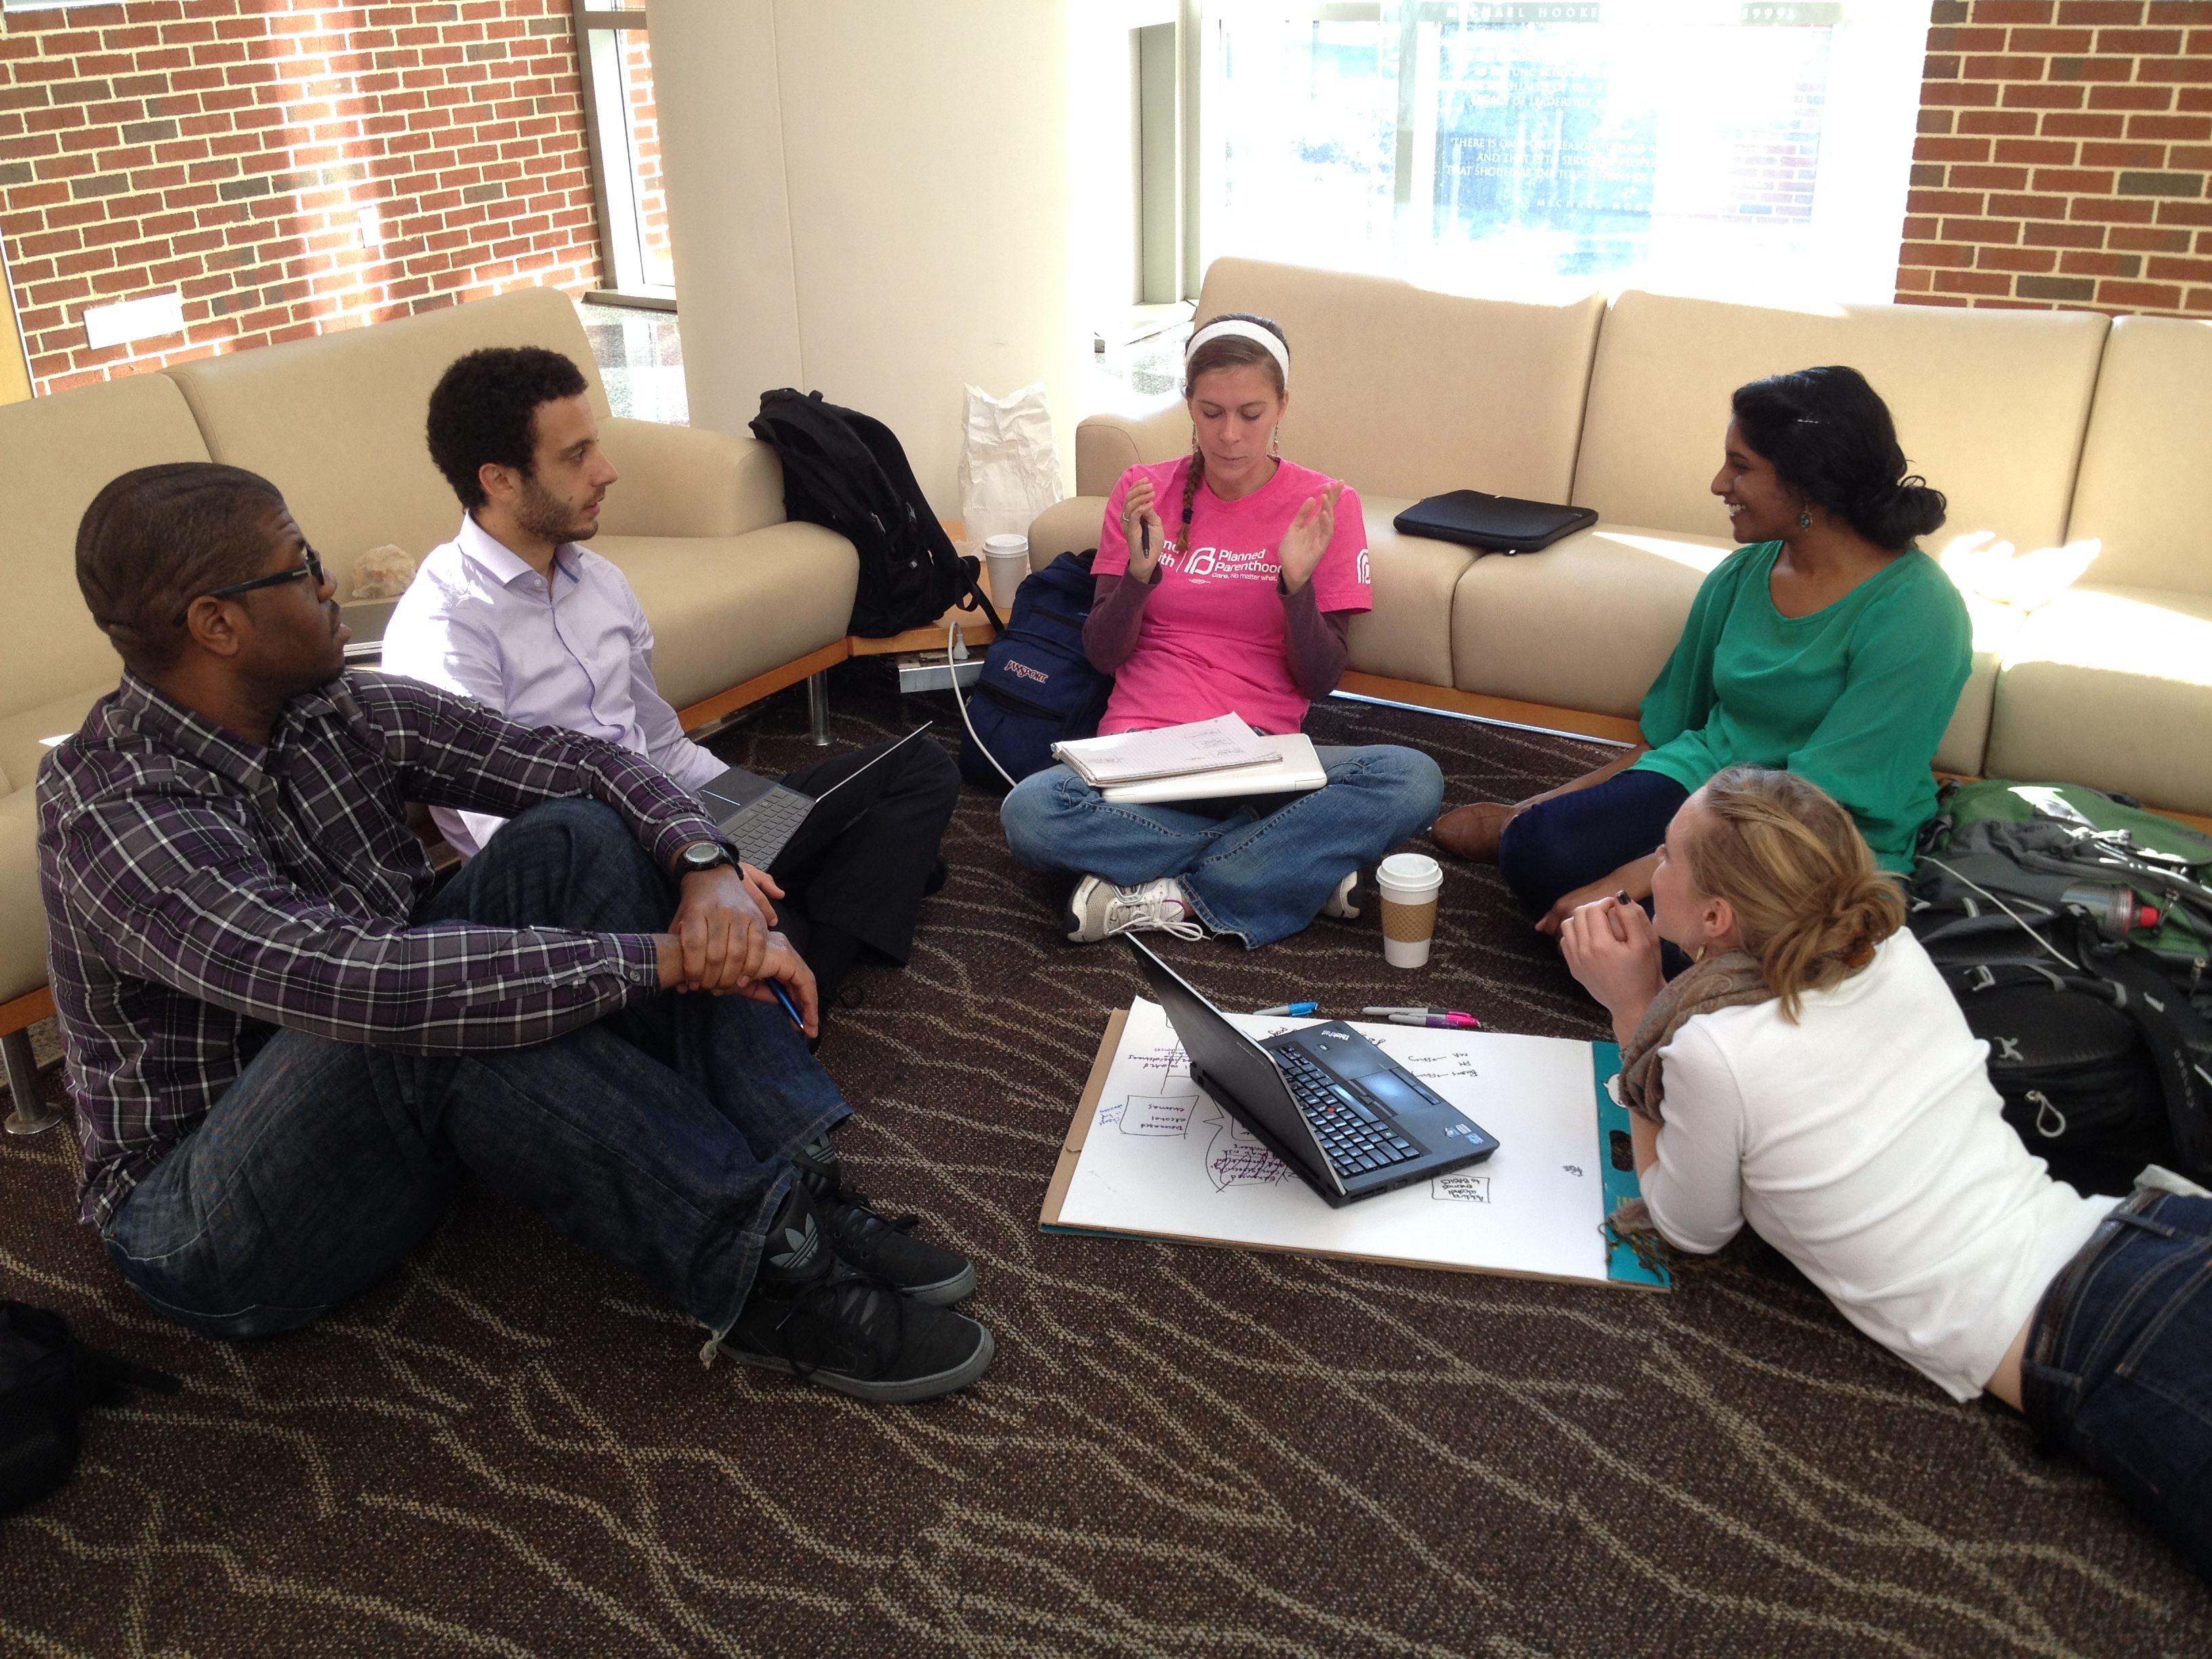 Classmates from the health behavior department brainstorm project ideas in Armfield Atrium.